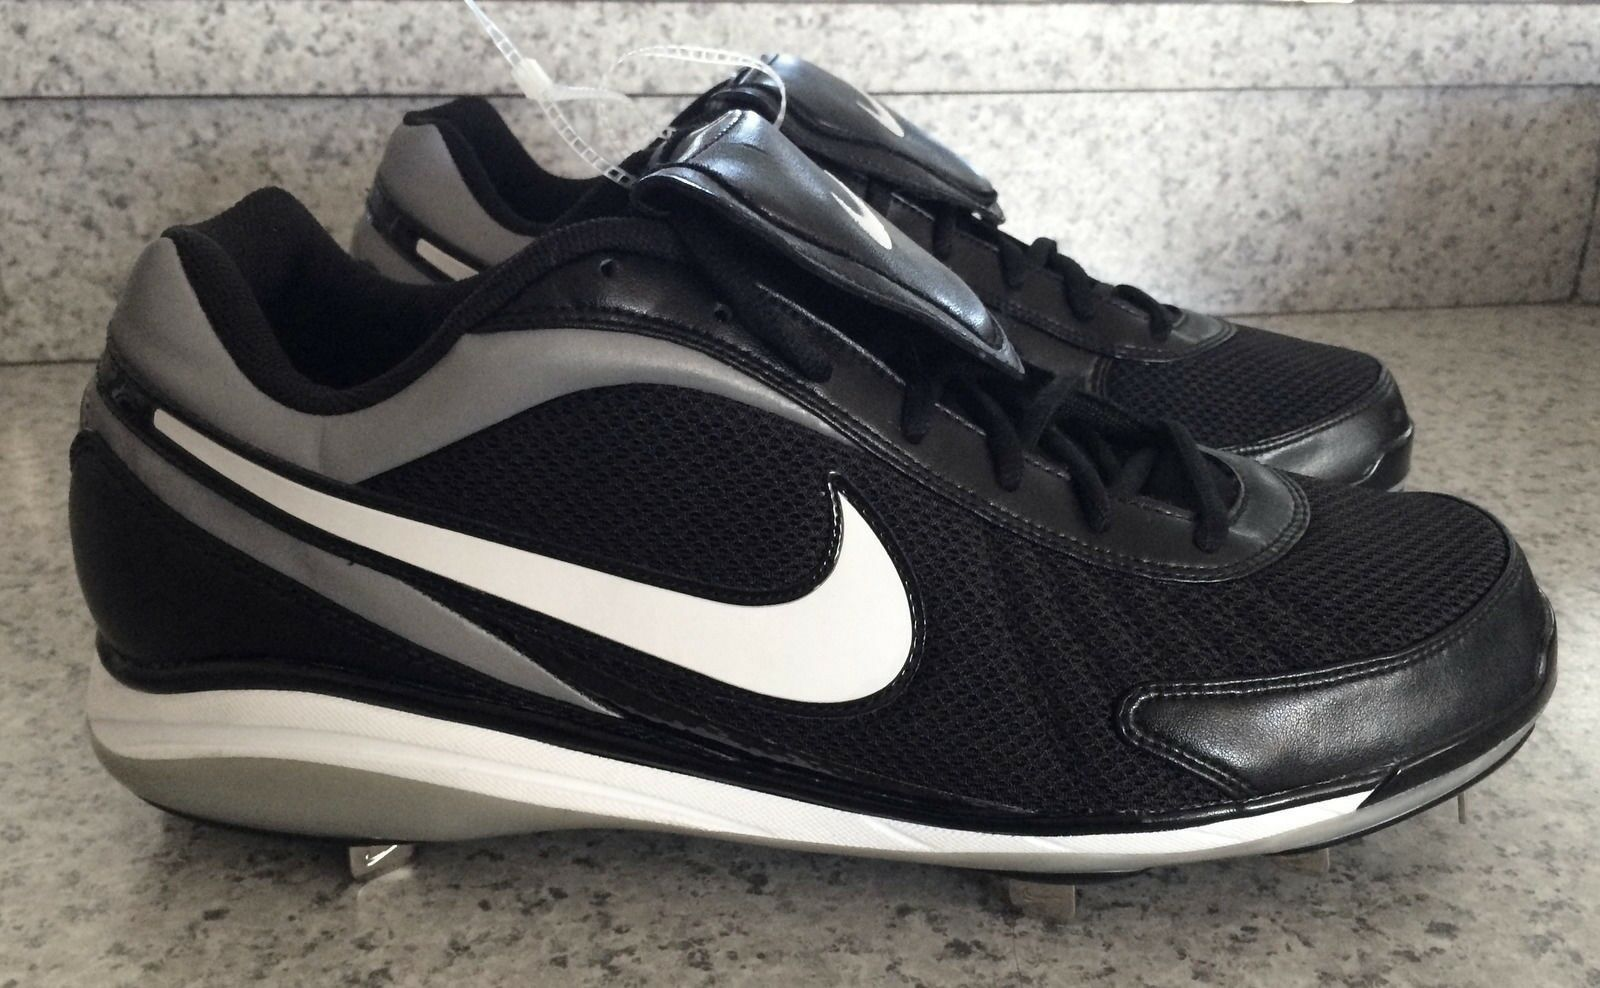 NIKE Air Zoom Coop V 5 Black White Metal Spike Baseball Cleats NEW Mens Comfortable Cheap and beautiful fashion